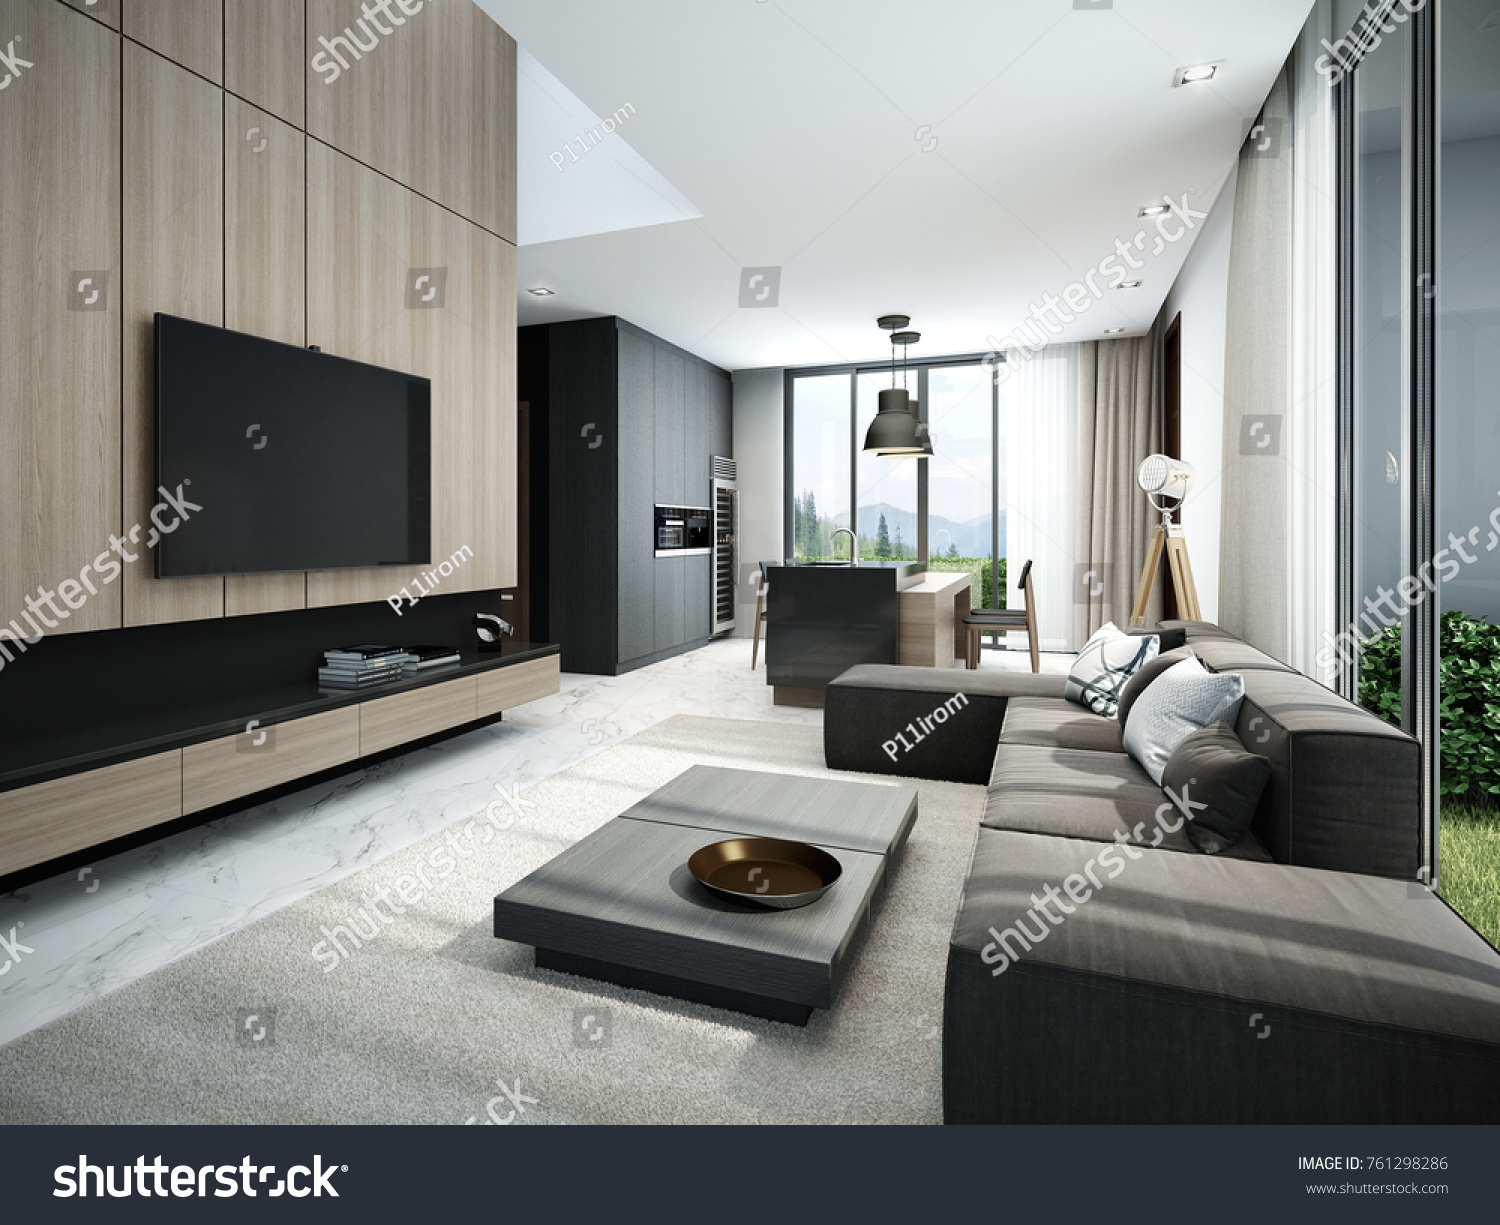 Modern Living Room Kitchen 3d Render Stock Illustration 761298286 ...